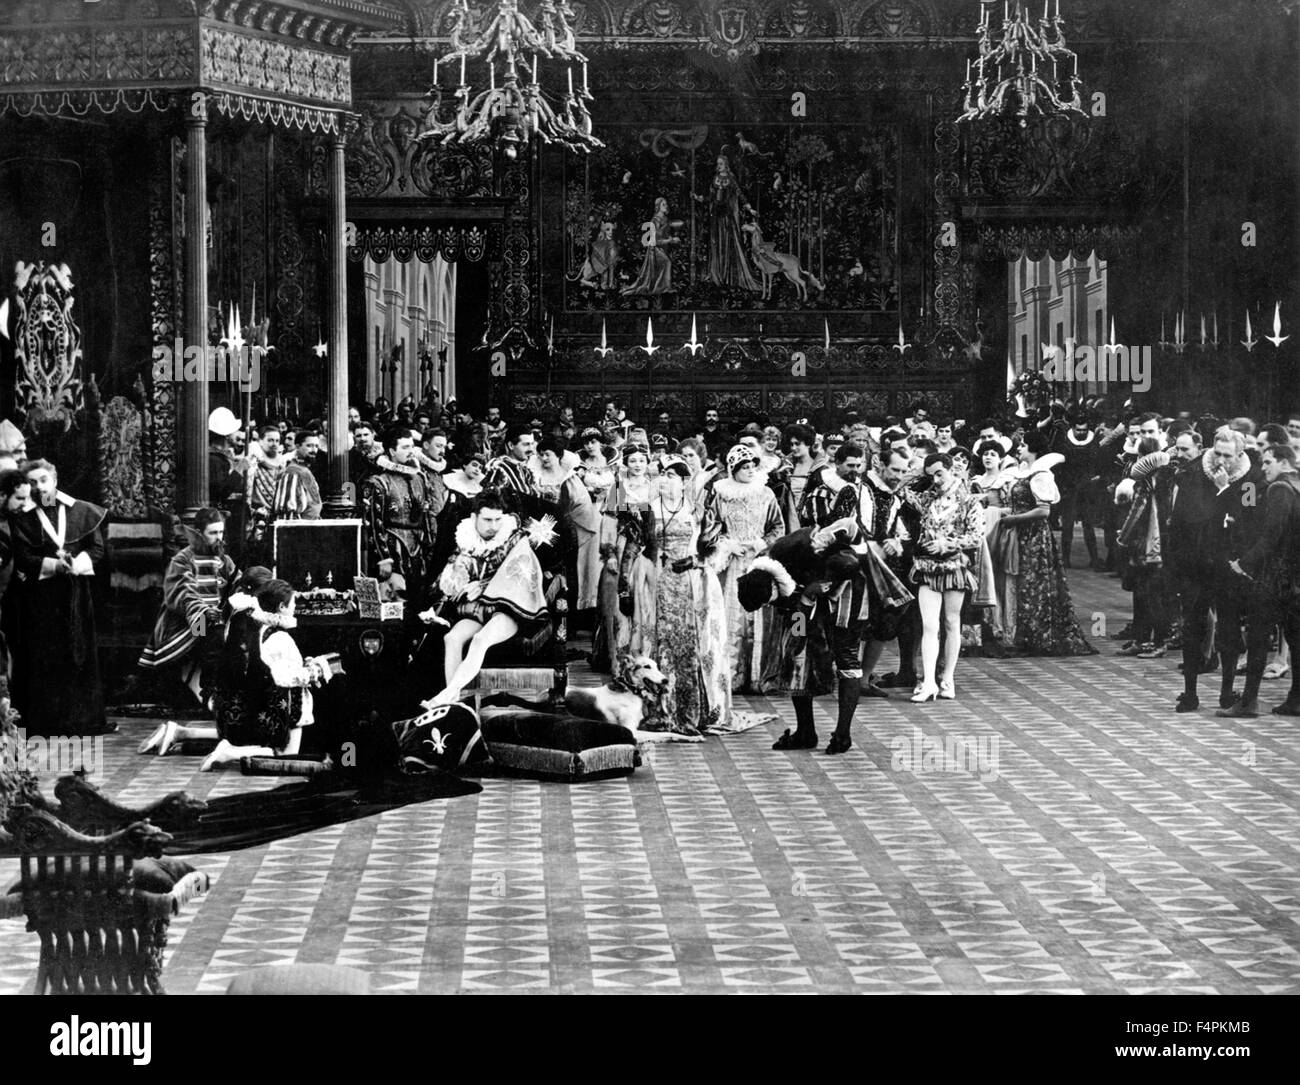 Intolerance: Love's Struggle Throughout the Ages / 1916 directed by D.W. Griffith [Triangle Distributing] - Stock Image